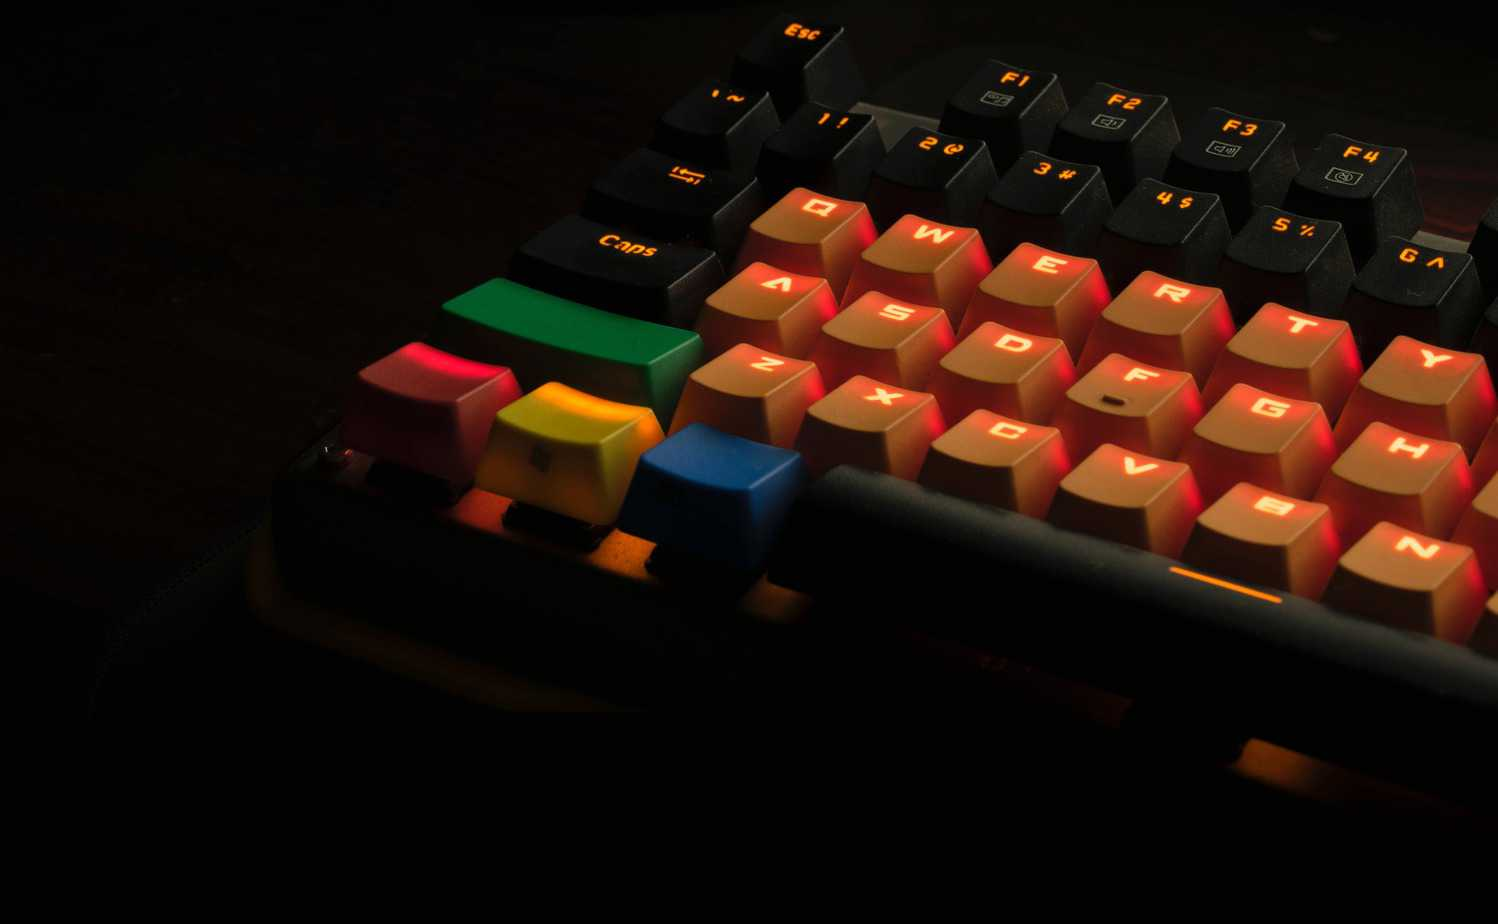 mechanical keyboard with various keycap sets